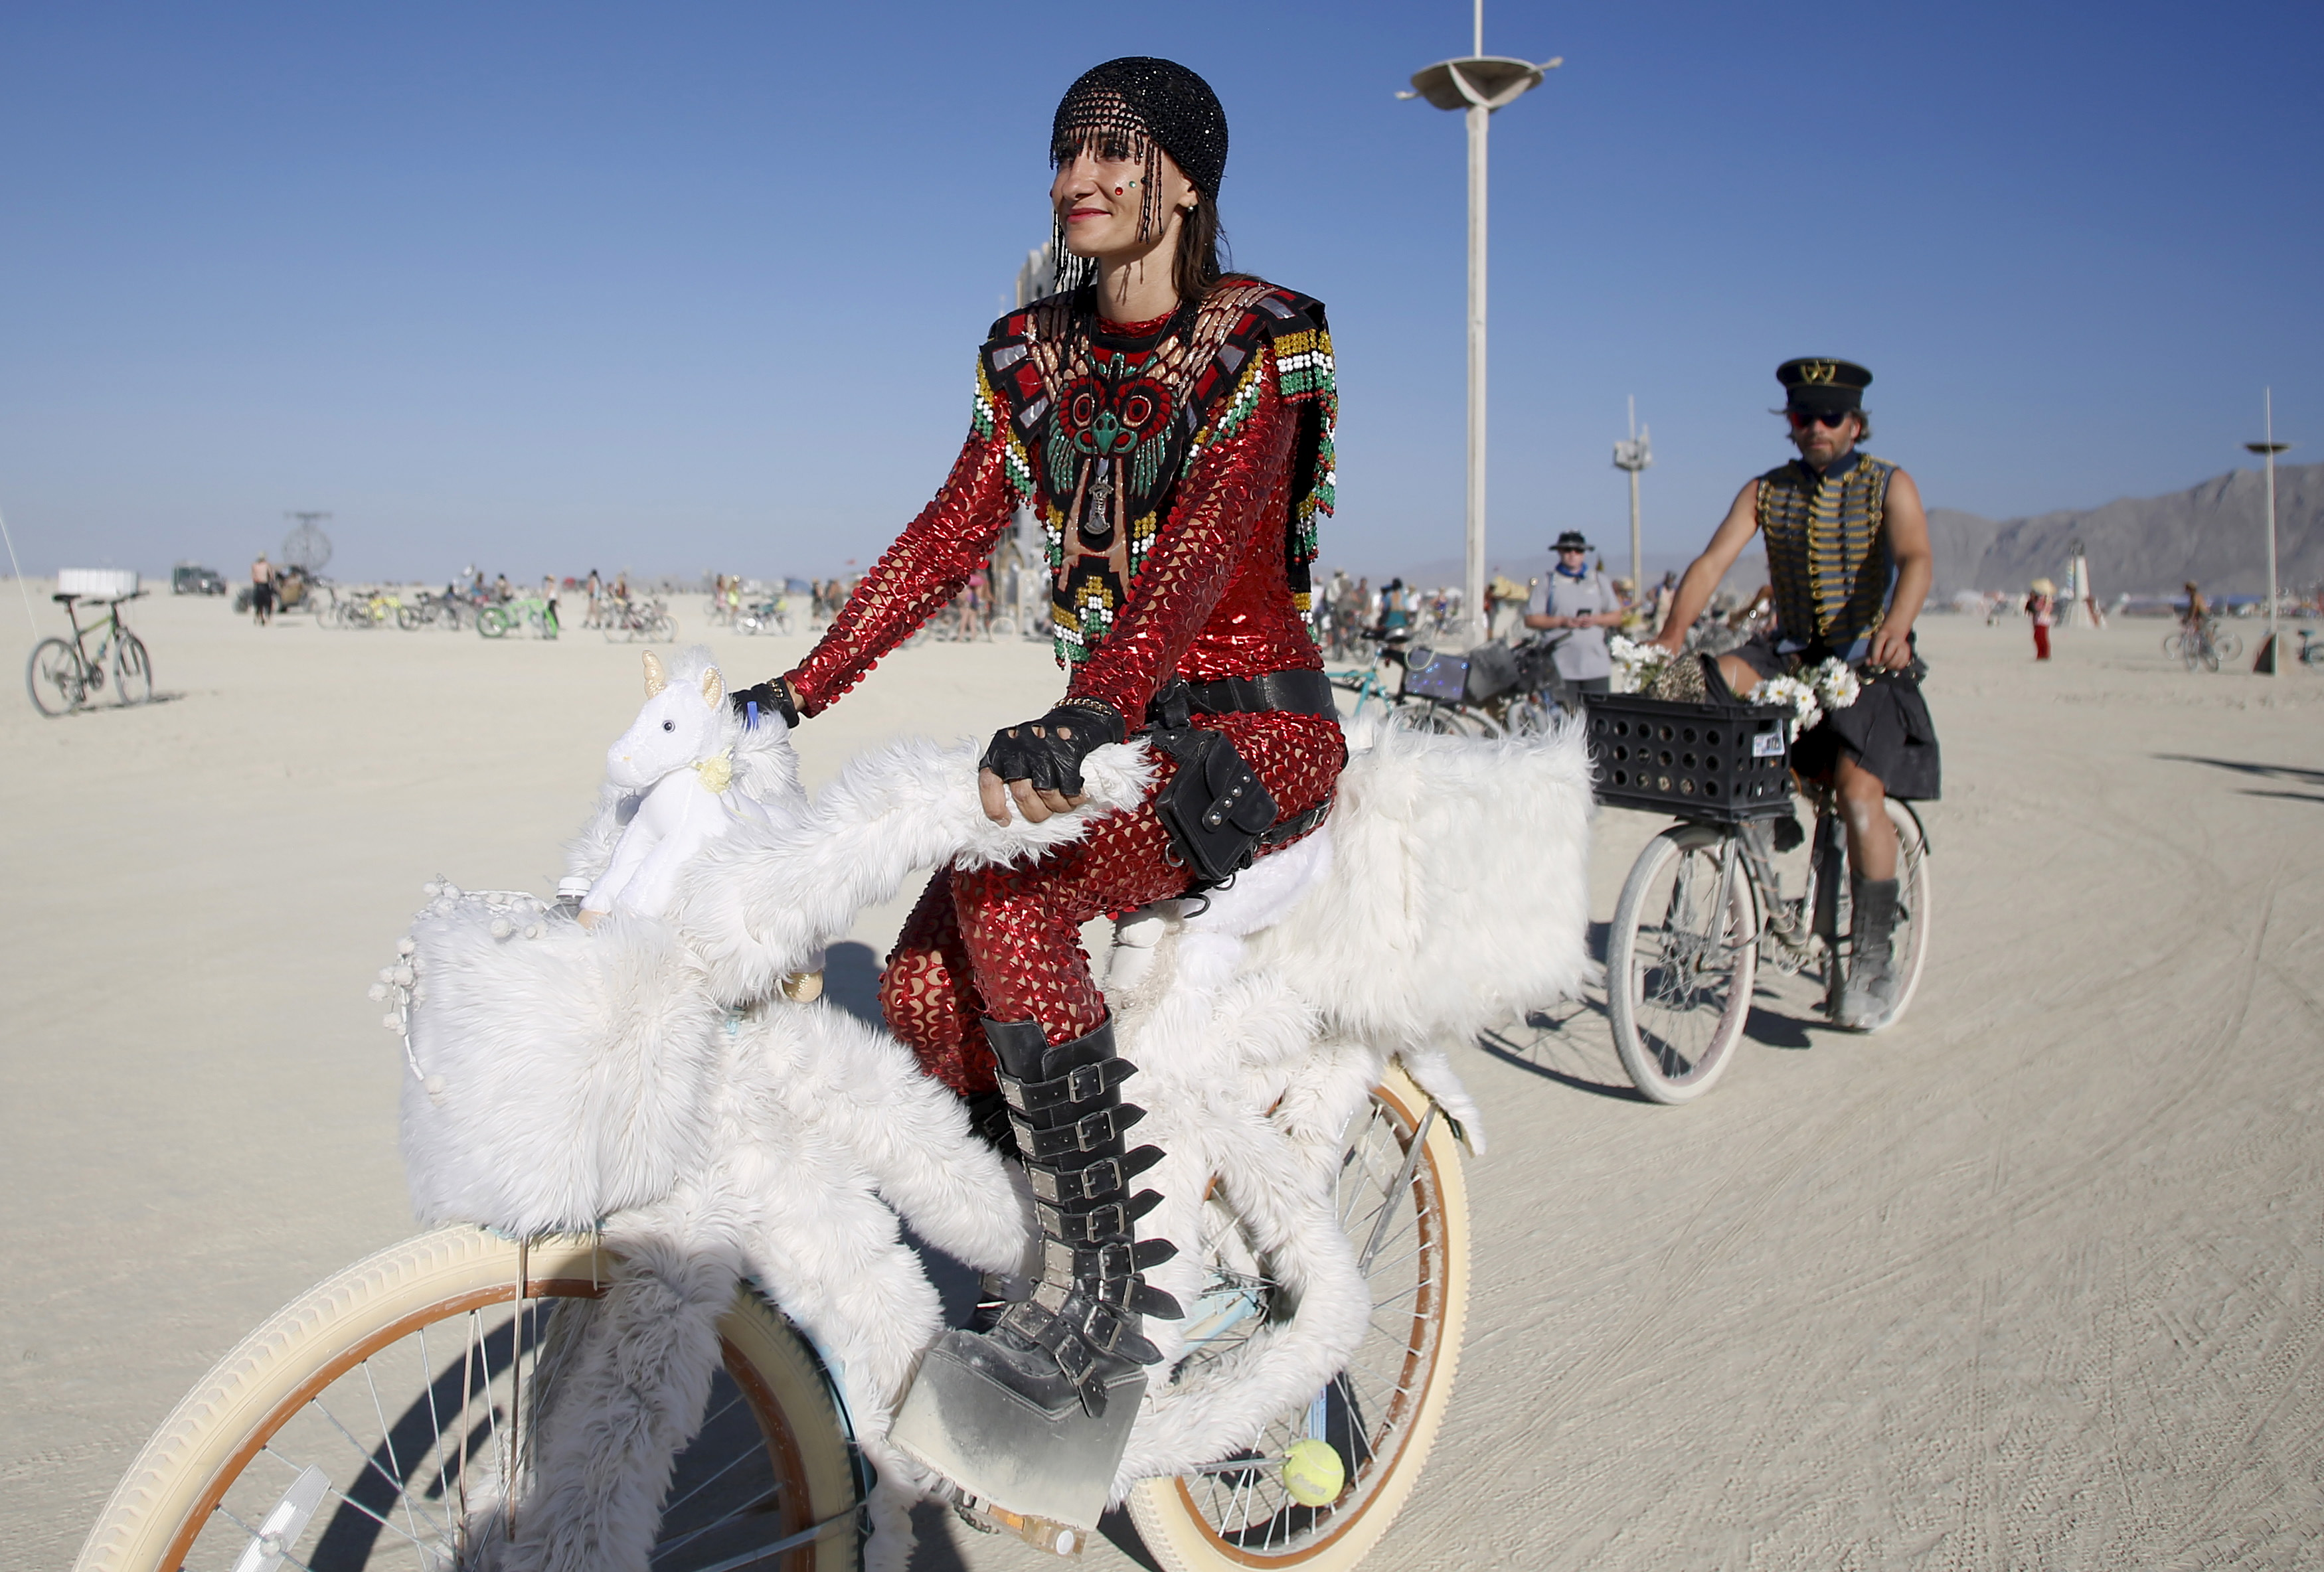 "Bibi rides her bike on the Playa during the Burning Man 2015 ""Carnival of Mirrors"" arts and music festival in the Black Rock Desert of Nevada, August 31, 2015. Approximately 70,000 people from all over the world are gathering at the sold-out festival to spend a week in the remote desert to experience art, music and the unique community that develops. REUTERS/Jim Urquhart FOR USE WITH BURNING MAN RELATED REPORTING ONLY. FOR EDITORIAL USE ONLY. NOT FOR SALE FOR MARKETING OR ADVERTISING CAMPAIGNS. NO THIRD PARTY SALES. NOT FOR USE BY REUTERS THIRD PARTY DISTRIBUTORS - RTX1QINK"